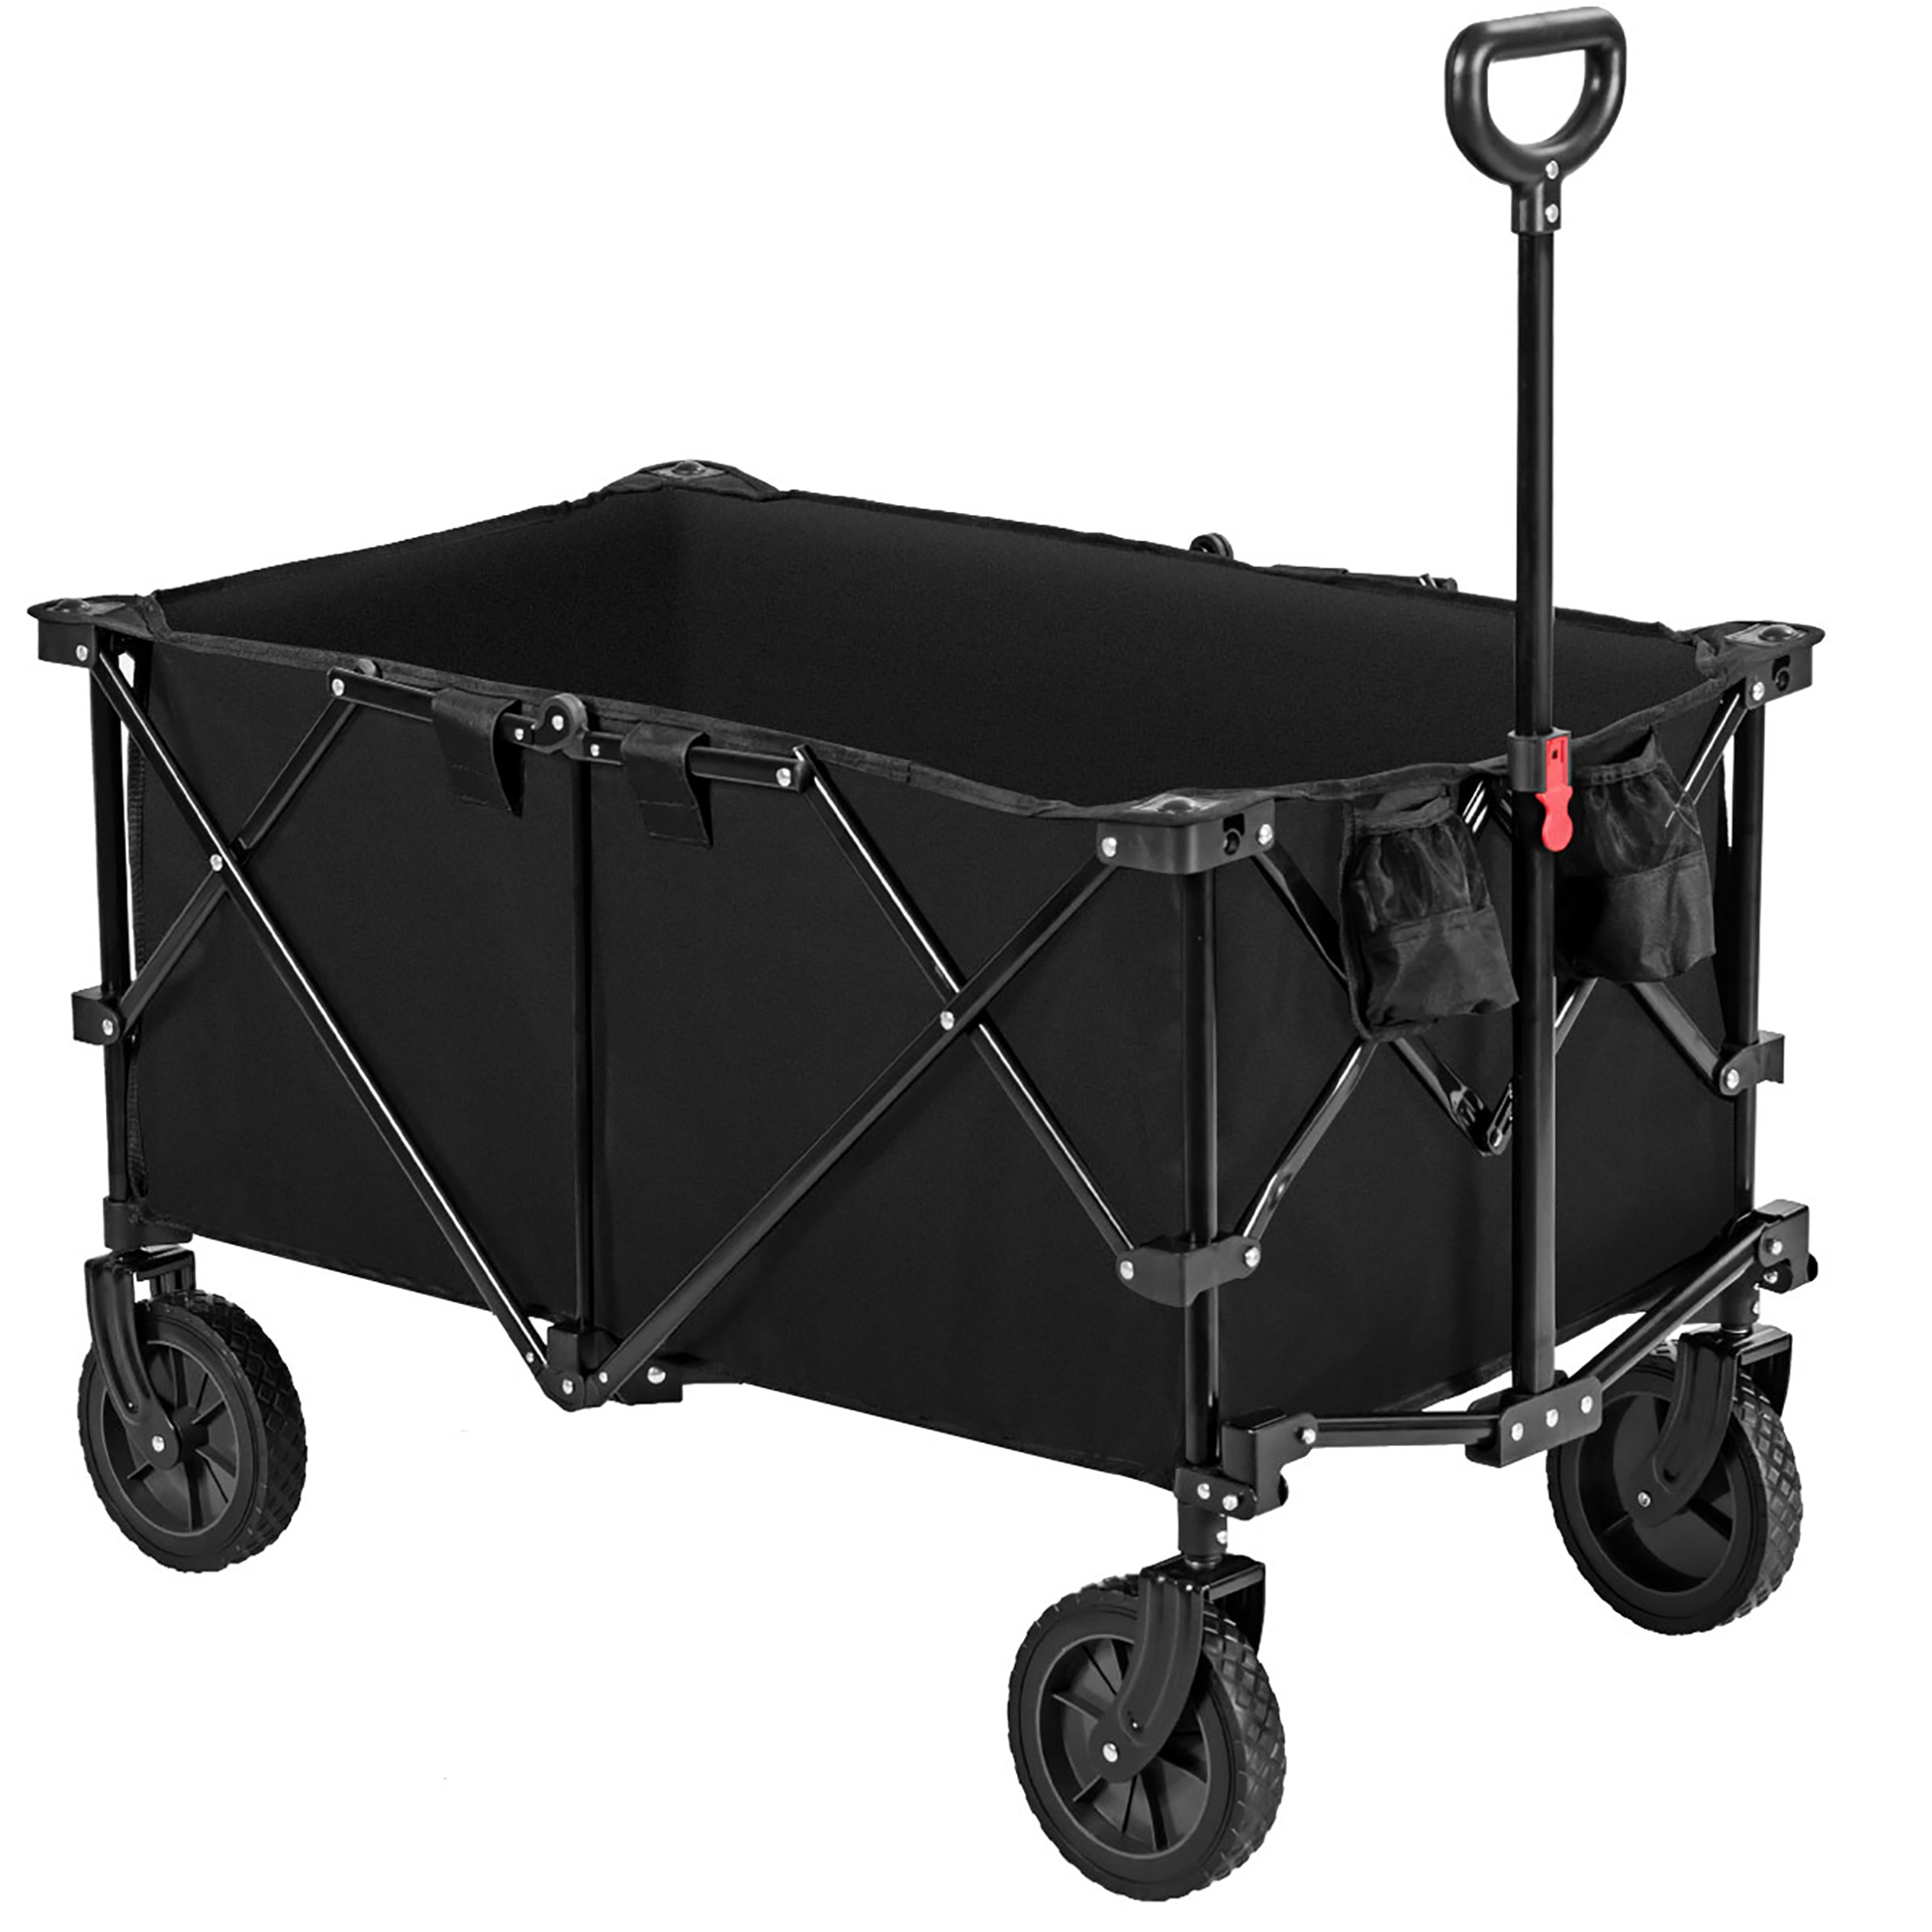 Navy Blue Coastrail Outdoor Collapsible Folding Wagon Utility Garden Cart 180lbs Heavy Duty All Terrain Universal Wheels /& Telescoping Handle for Camping Grocery Sports Shopping